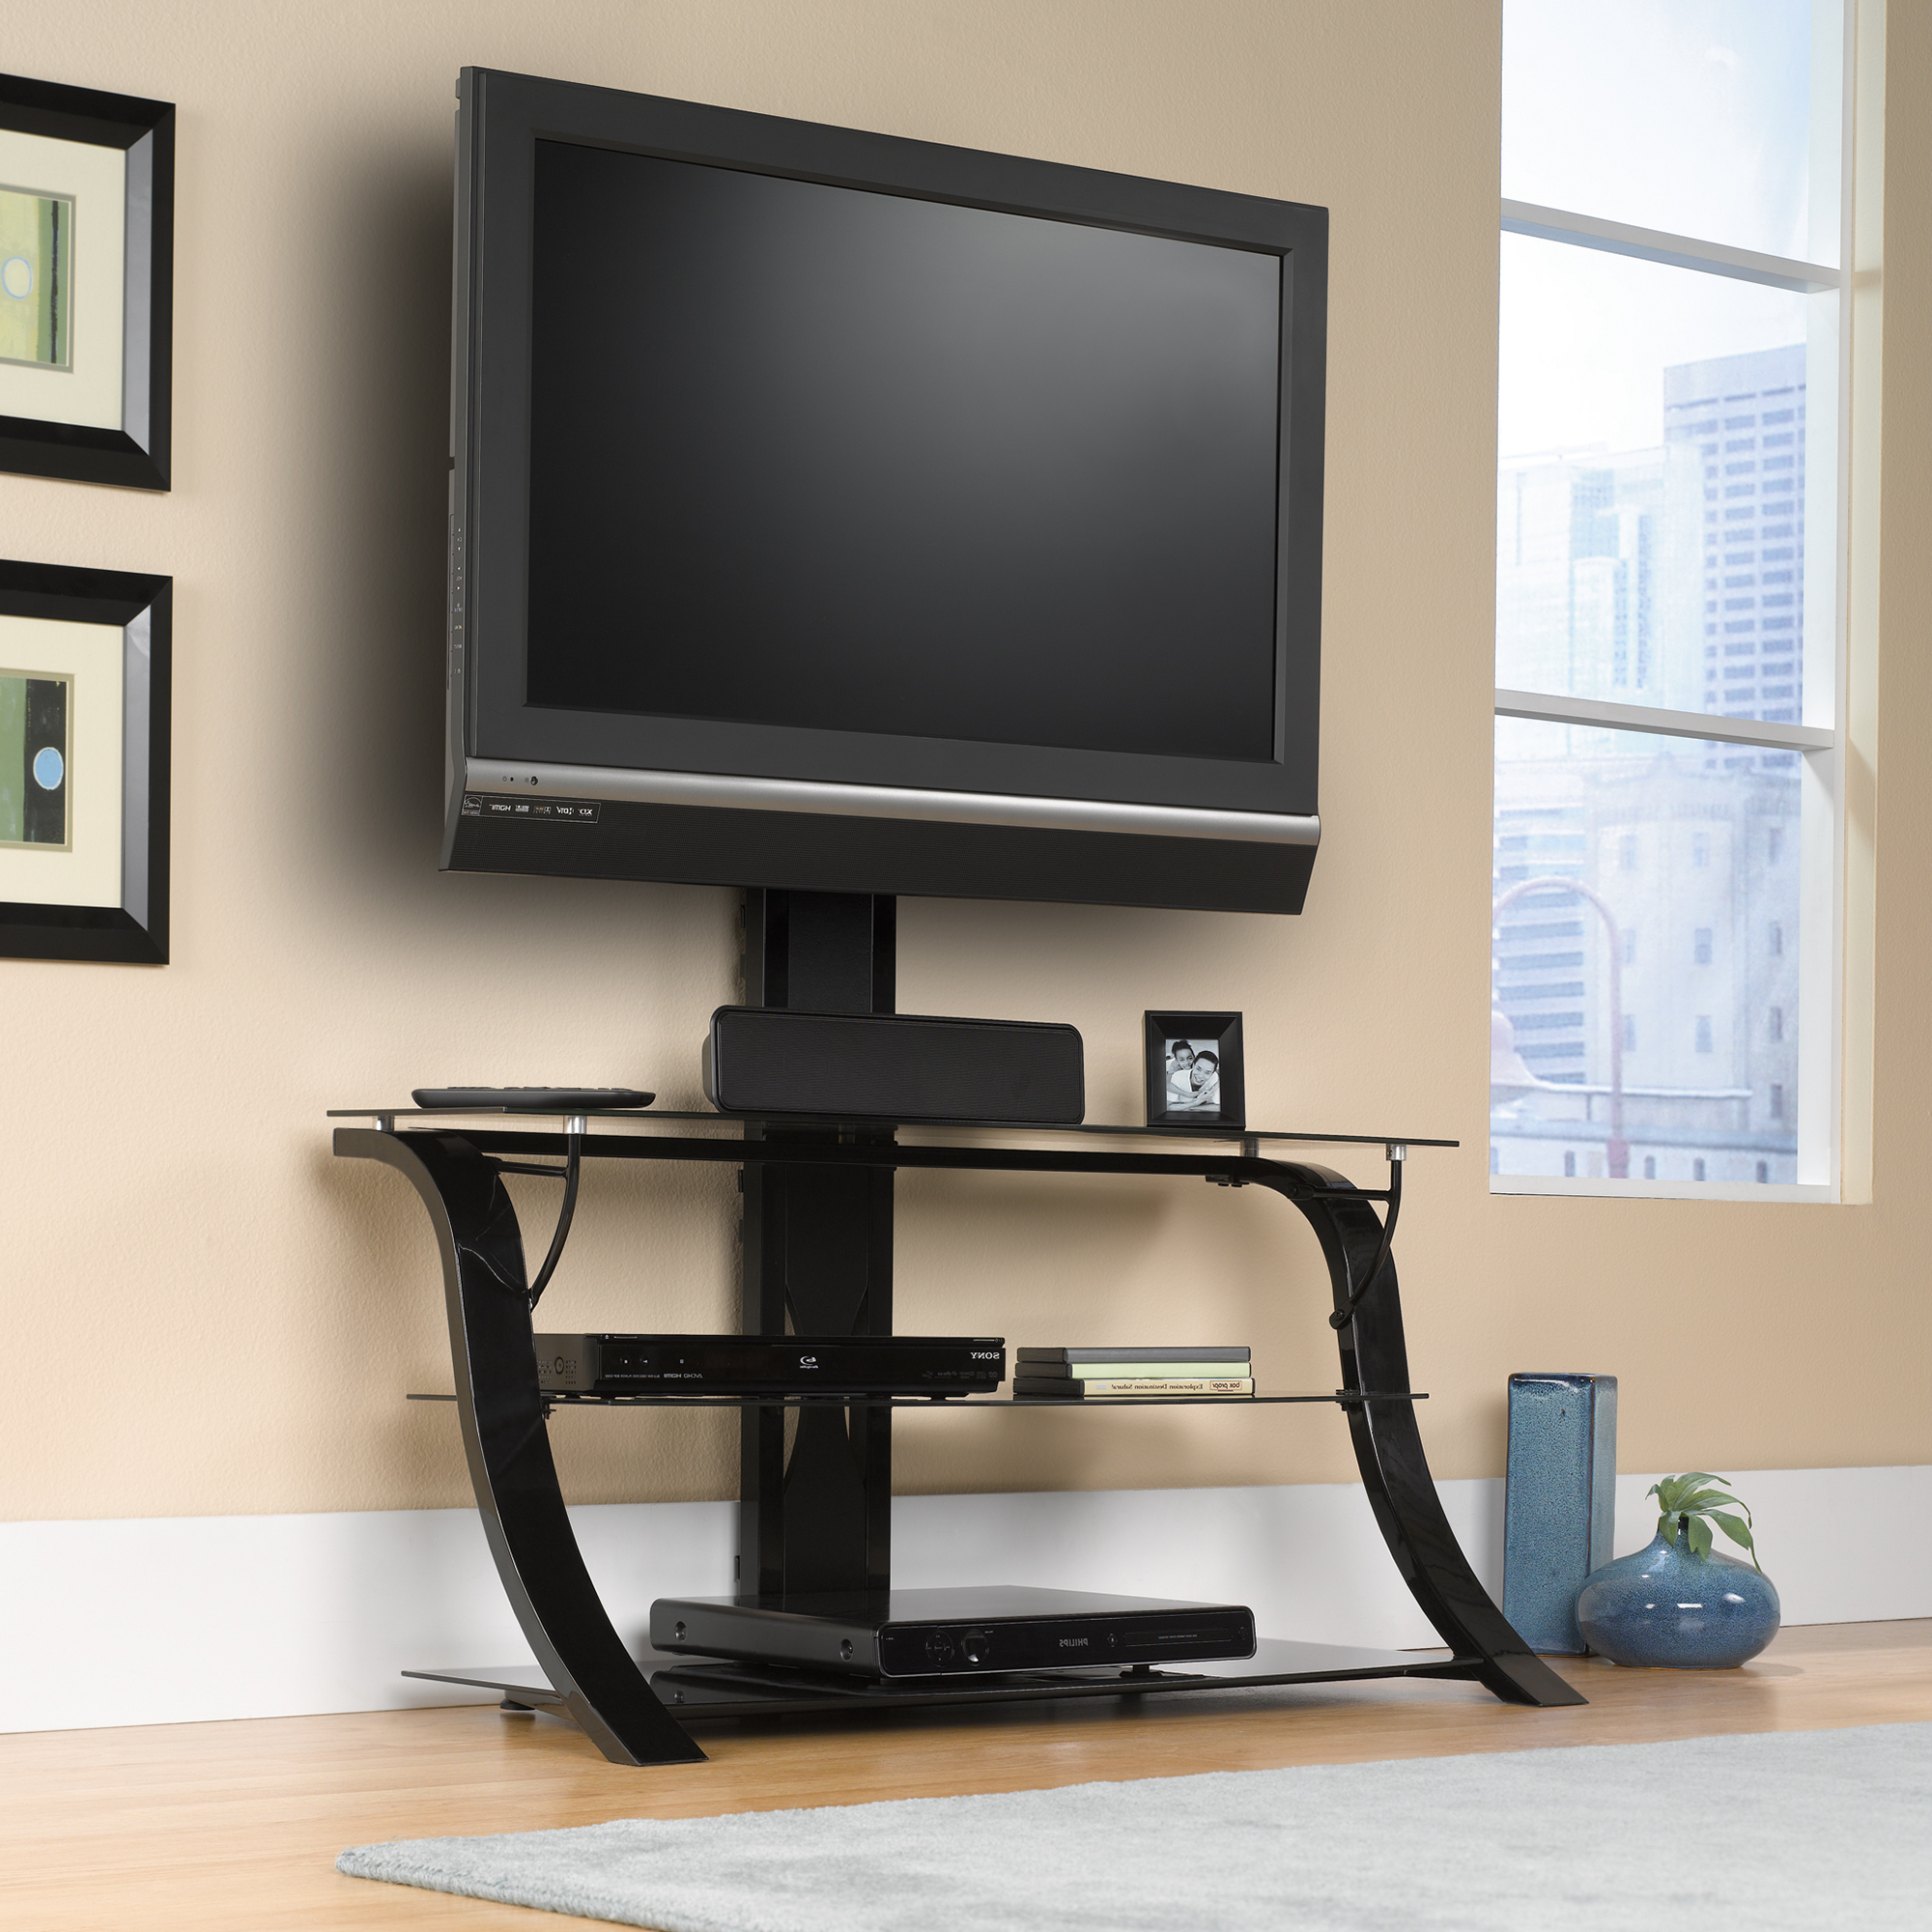 Trendy Tv Stand With Mount Corner Stands Wood Armoire Flat Panel Fireplace Inside Wayfair Corner Tv Stands (View 8 of 20)